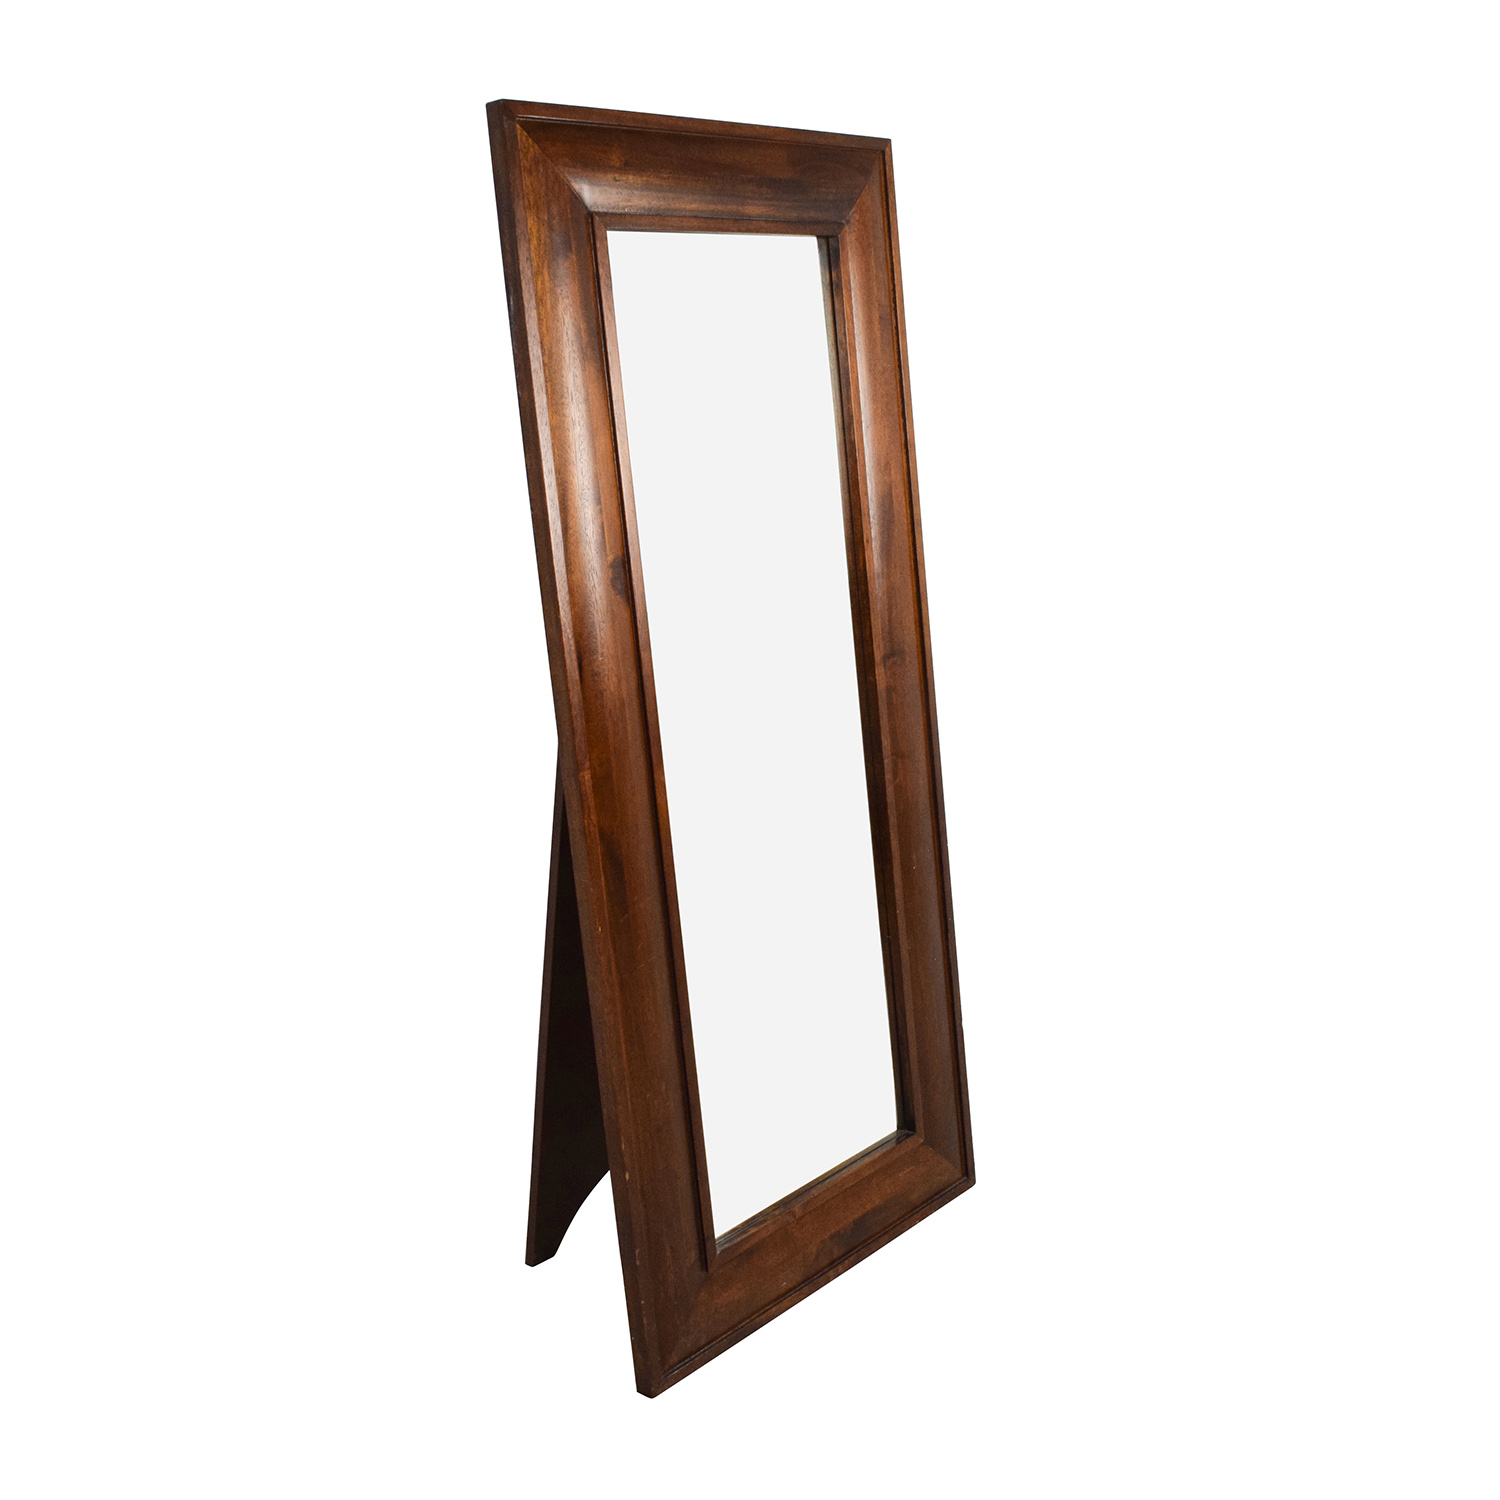 Mirrors used mirrors for sale Large wooden mirrors for sale